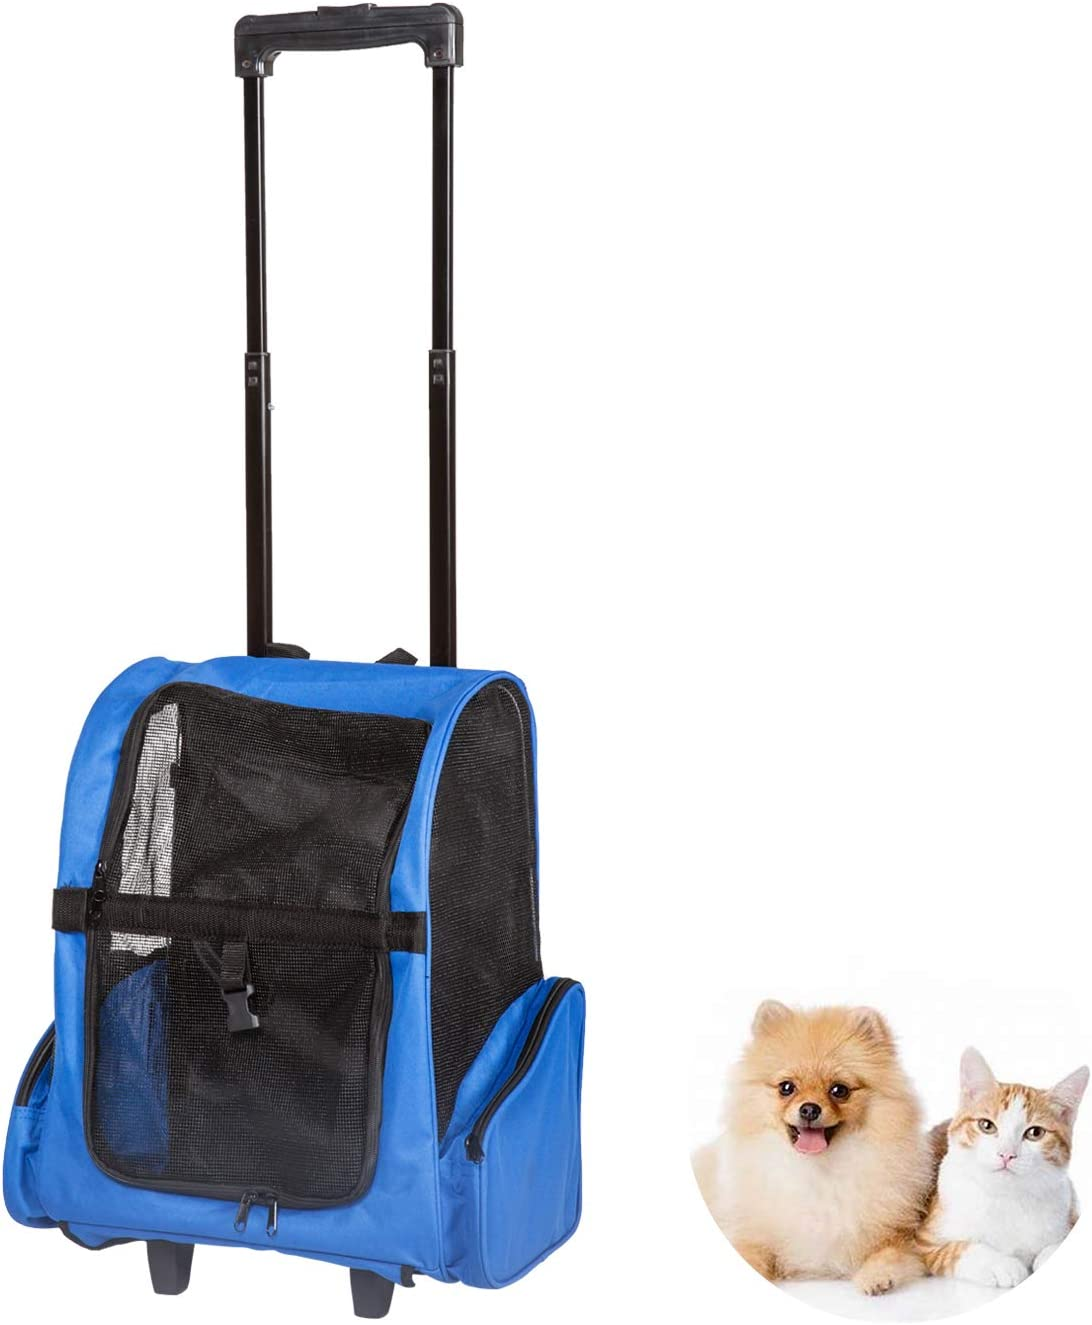 Peach Tree Pet Travel Rolling Backpack Rolling Carrier for Dogs Pet Carrier with Wheels Rolling Pet Travel Tote Airline Approved